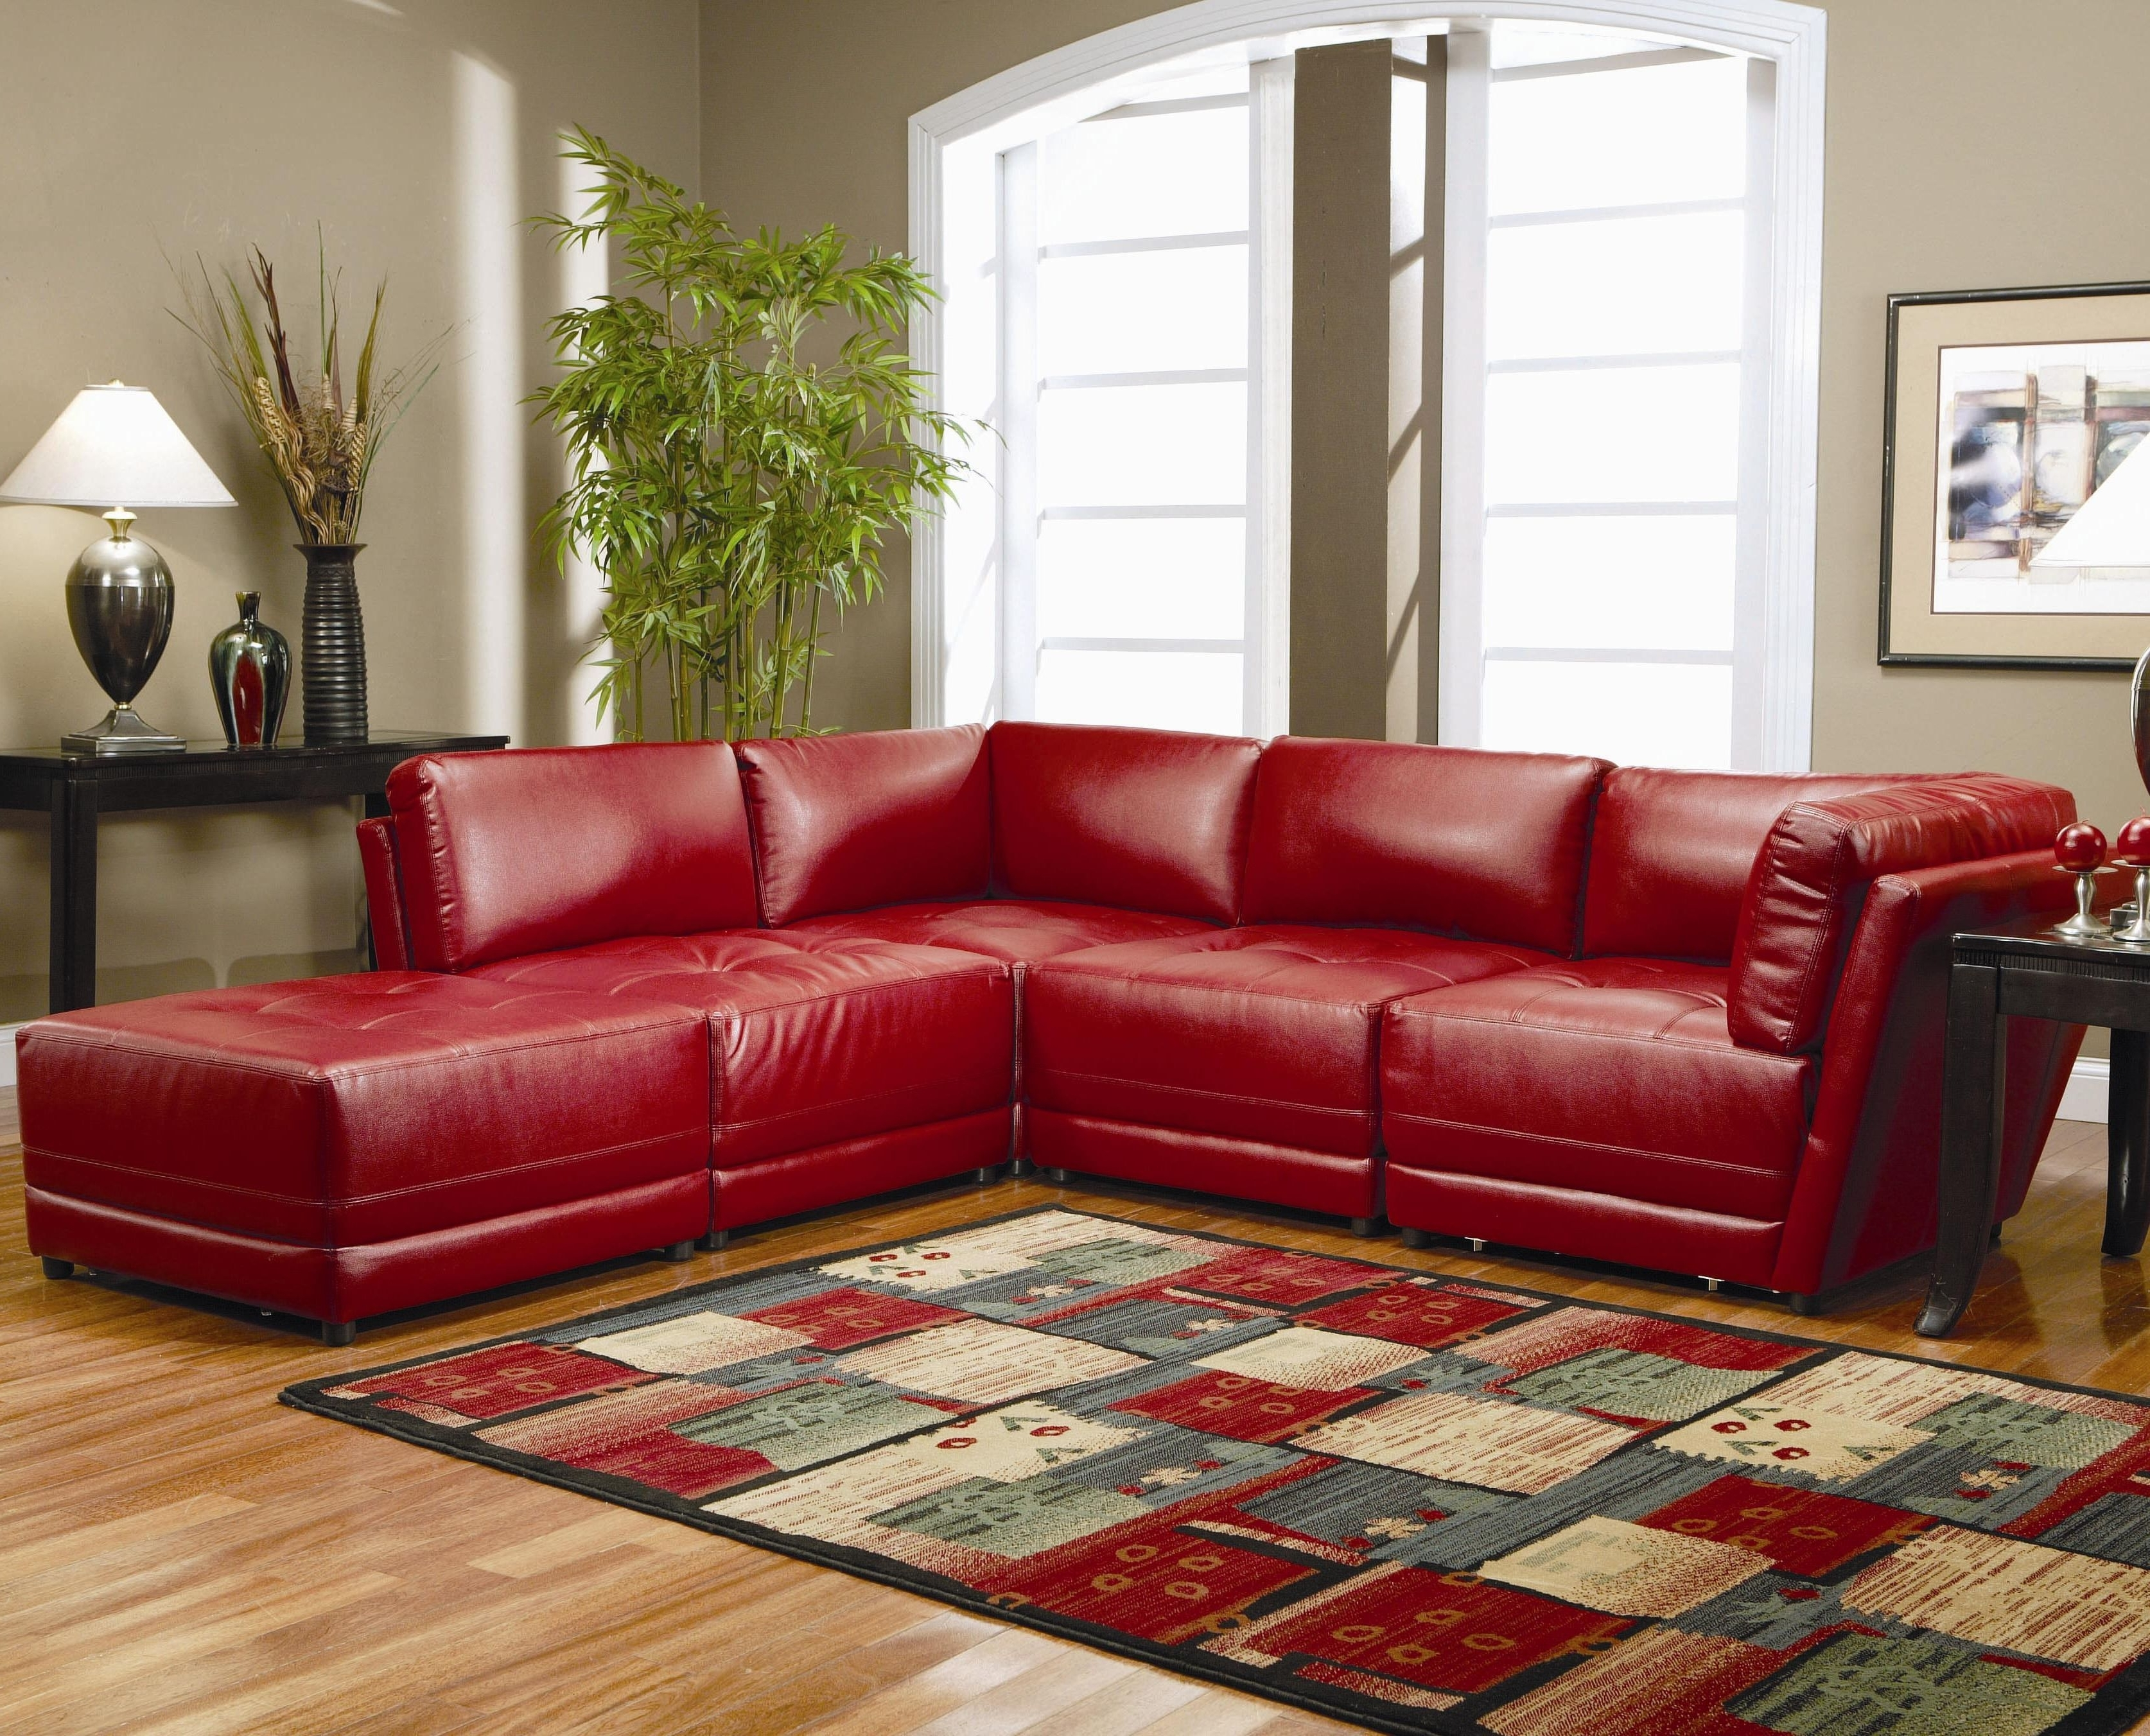 Best And Newest Small Red Leather Sectional Sofas Regarding Furniture : Sofa Gray Leather Sectional Set Sale Together With (View 5 of 15)